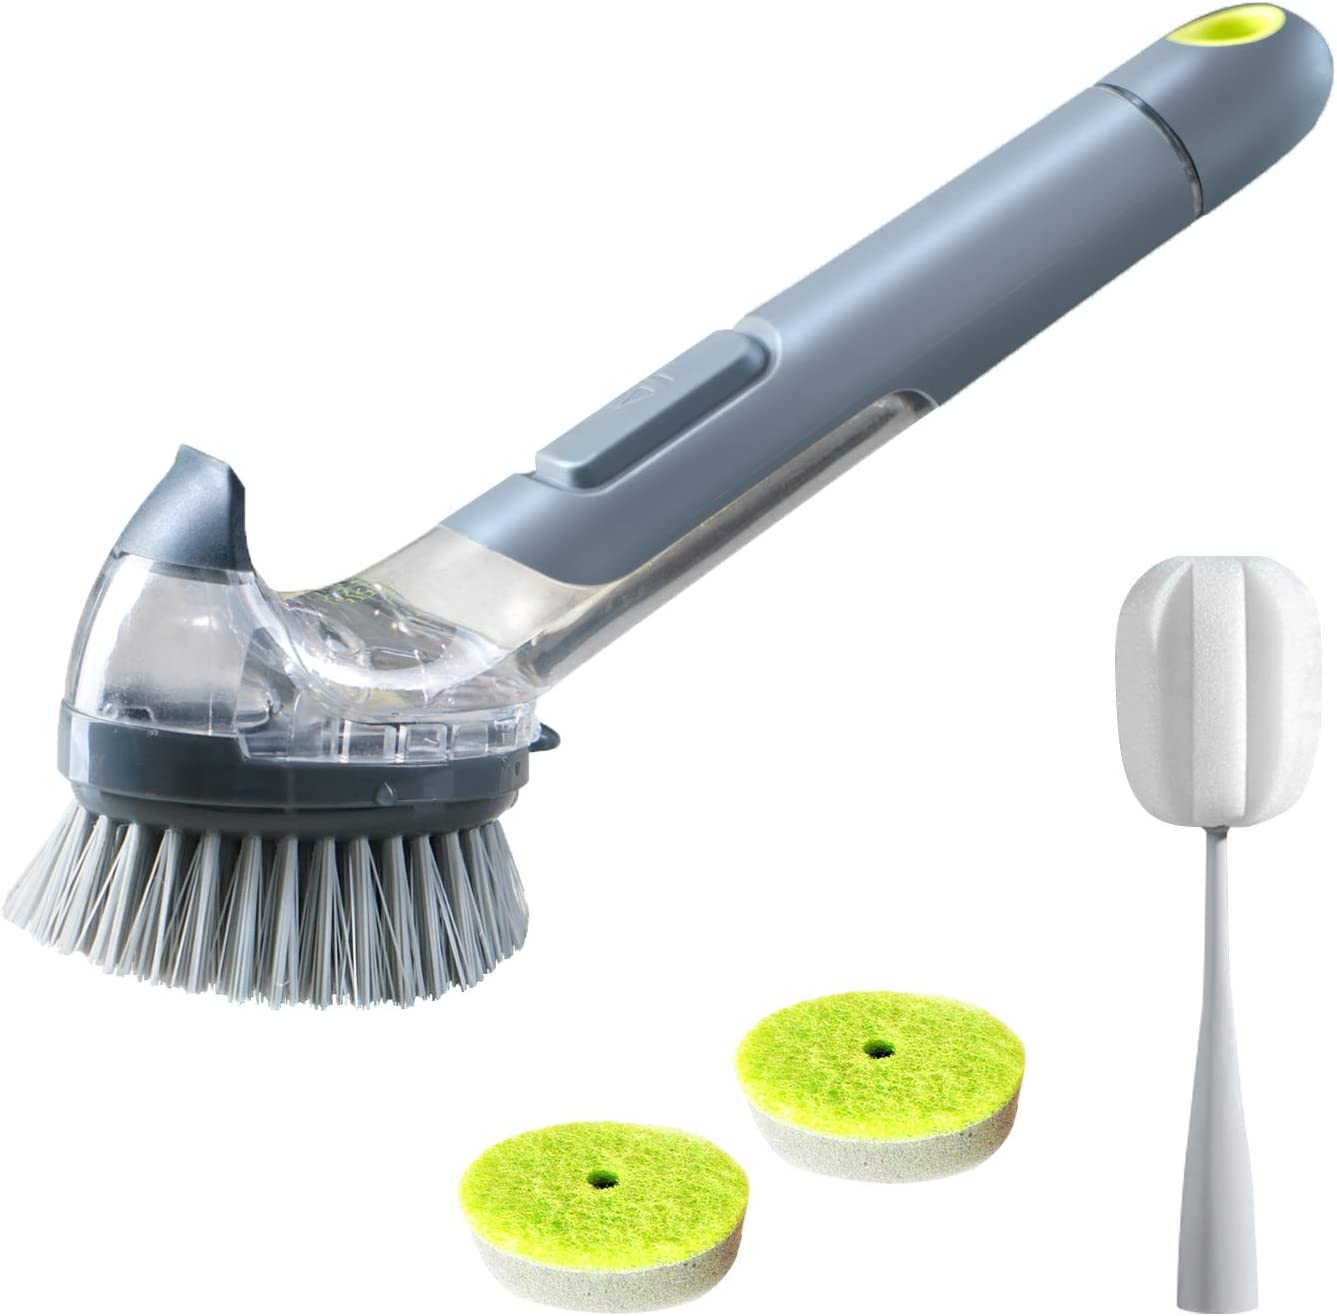 JEHONN Dish Brush with Soap Dispenser Pot Scrubber Kitchen Sink Pan Brush, Bottle Brush and 2 Sponge Refill